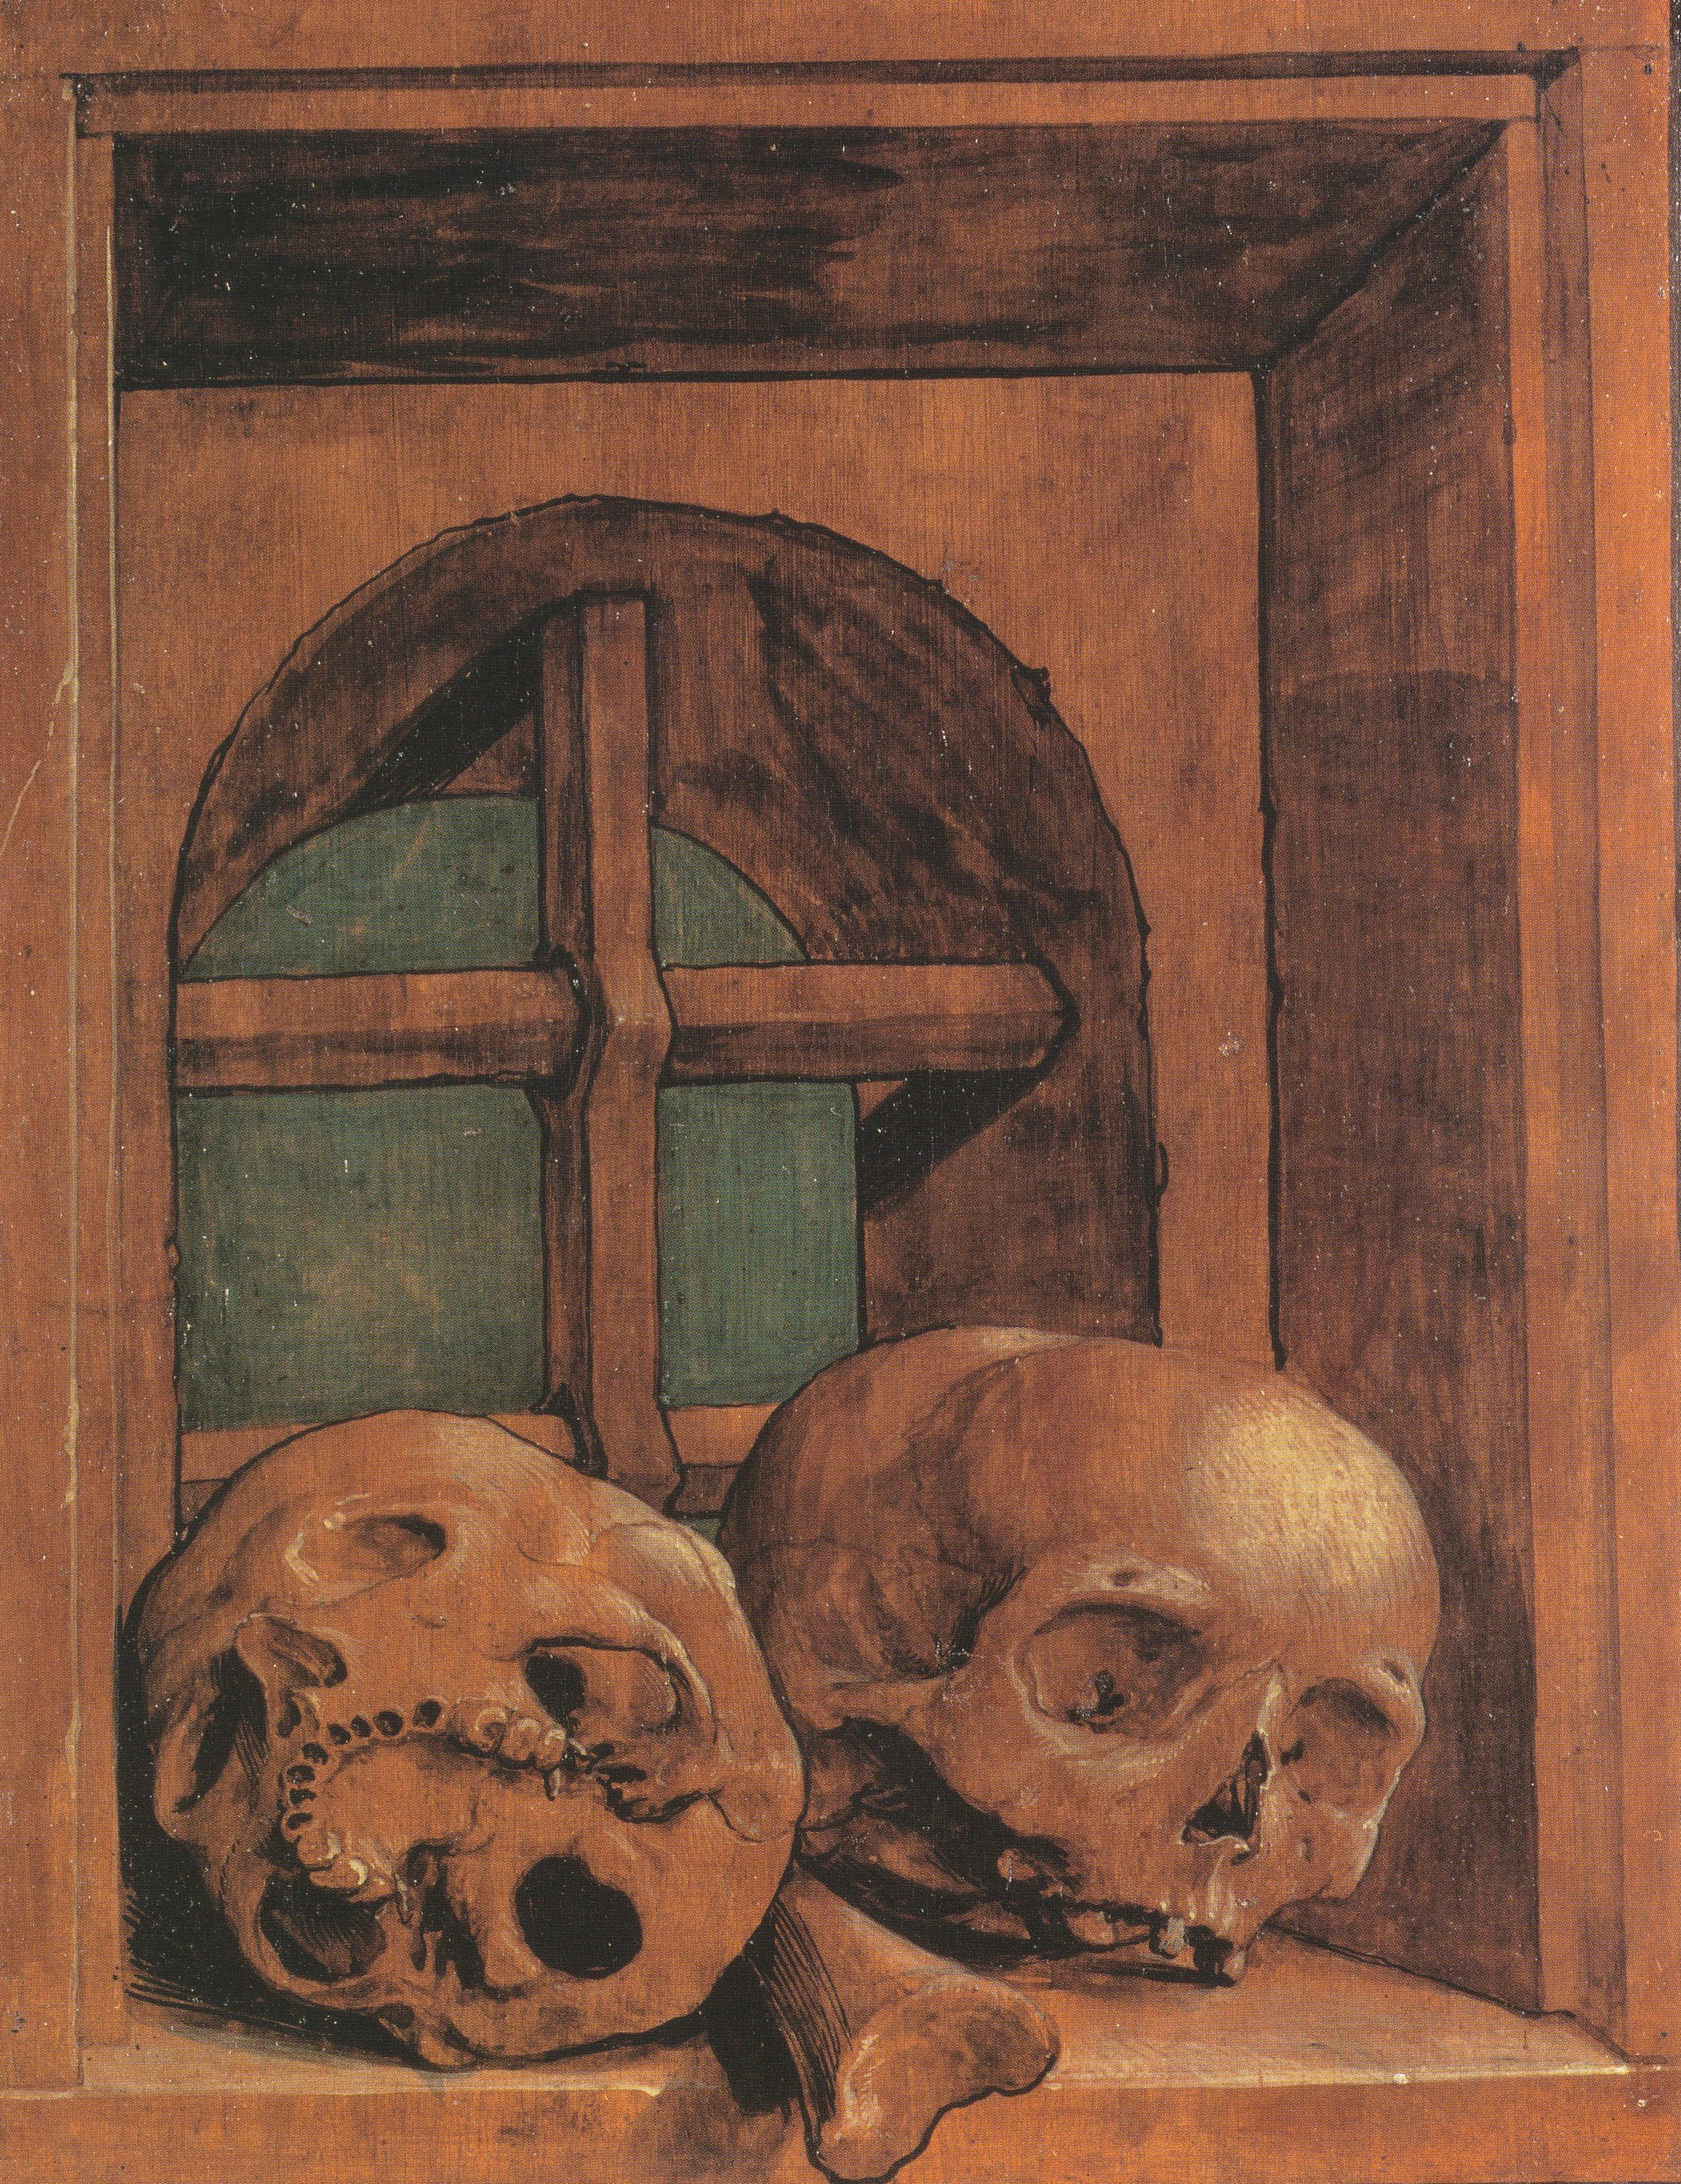 Two Skulls in a Window Niche. c.1520